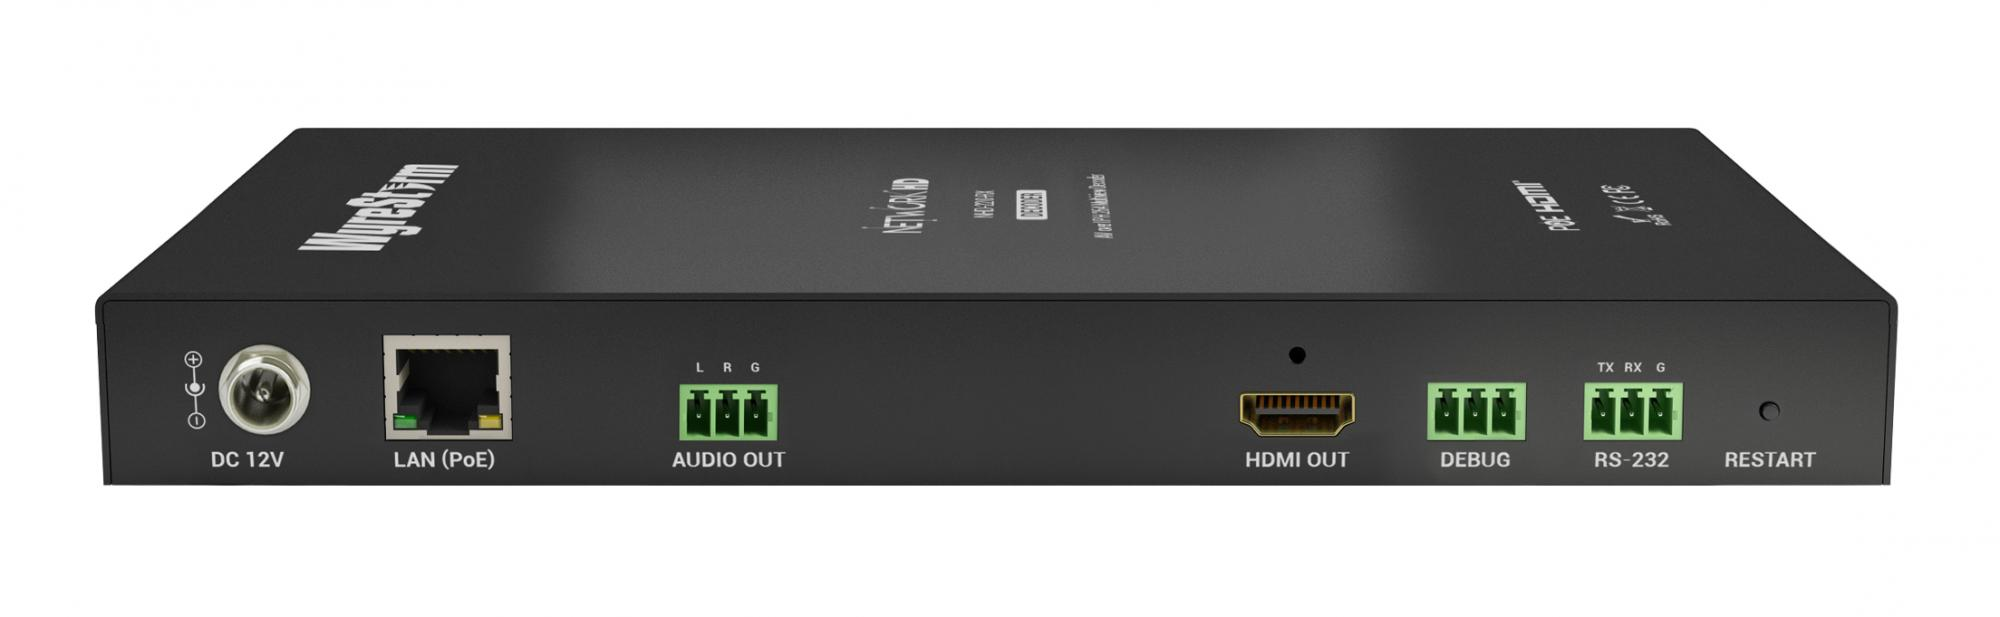 Video Hdmi Products Electronic Custom Distributors Details About 4x4 Cat5e Cat6 Matrix Auto Switch Splitter Extender Wyrenhd 220 Rx Wyrestorm Full Hd Ip H264 Low Bandwidth Streaming Decoder